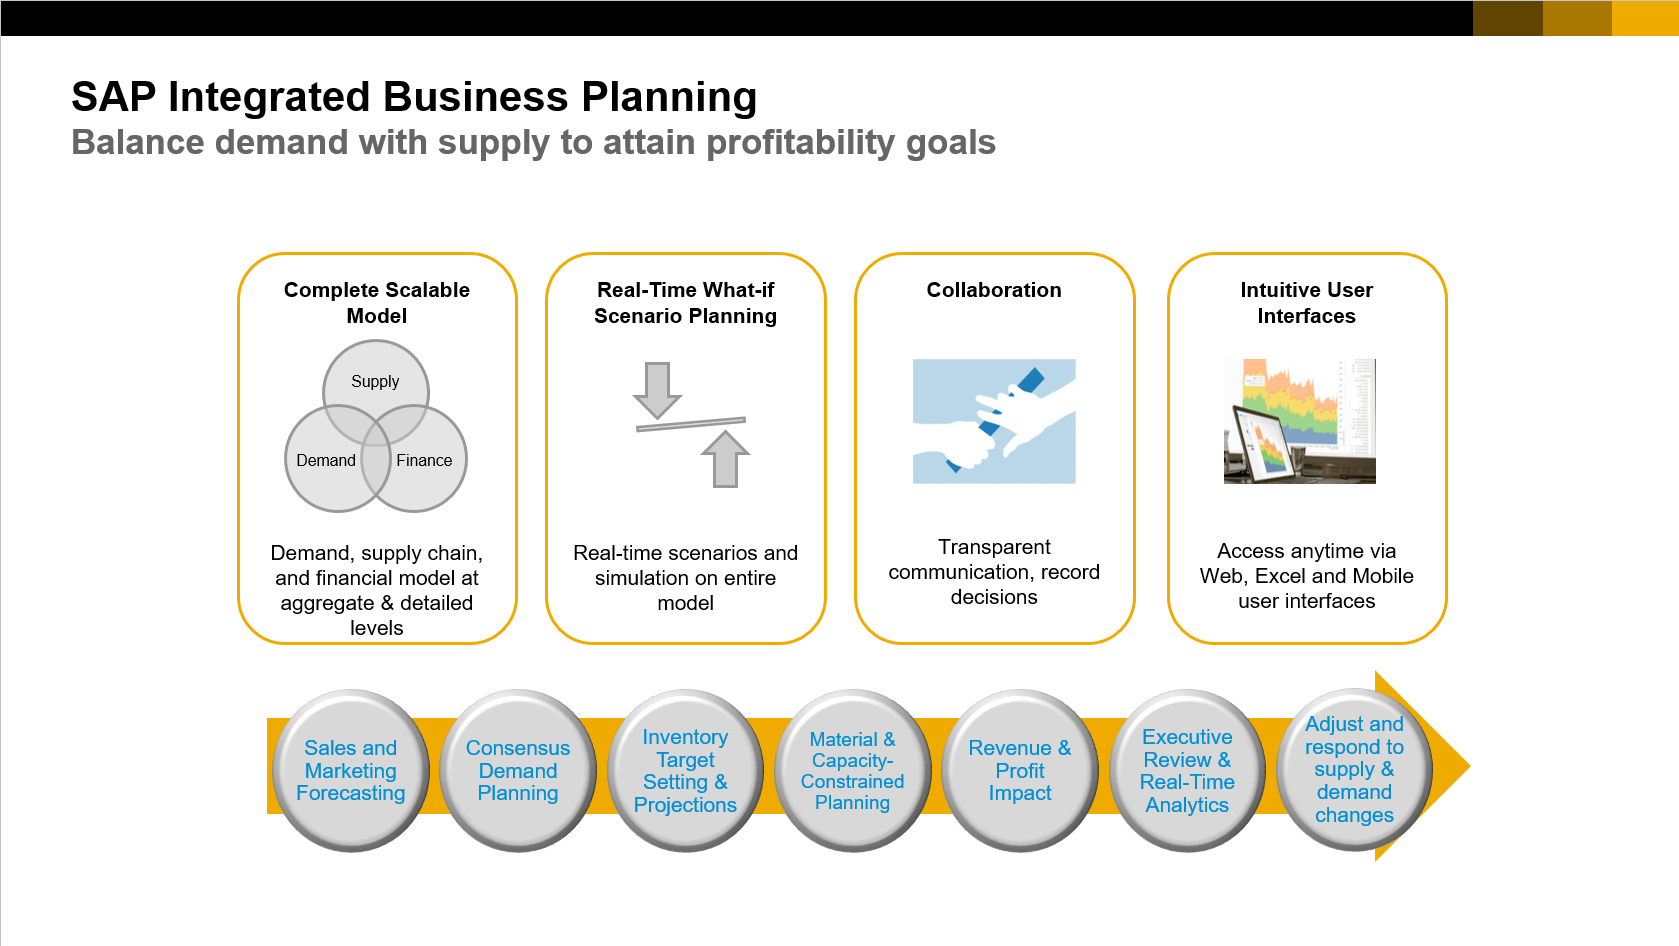 Getting started: SAP Integrated Business Planning - Supply